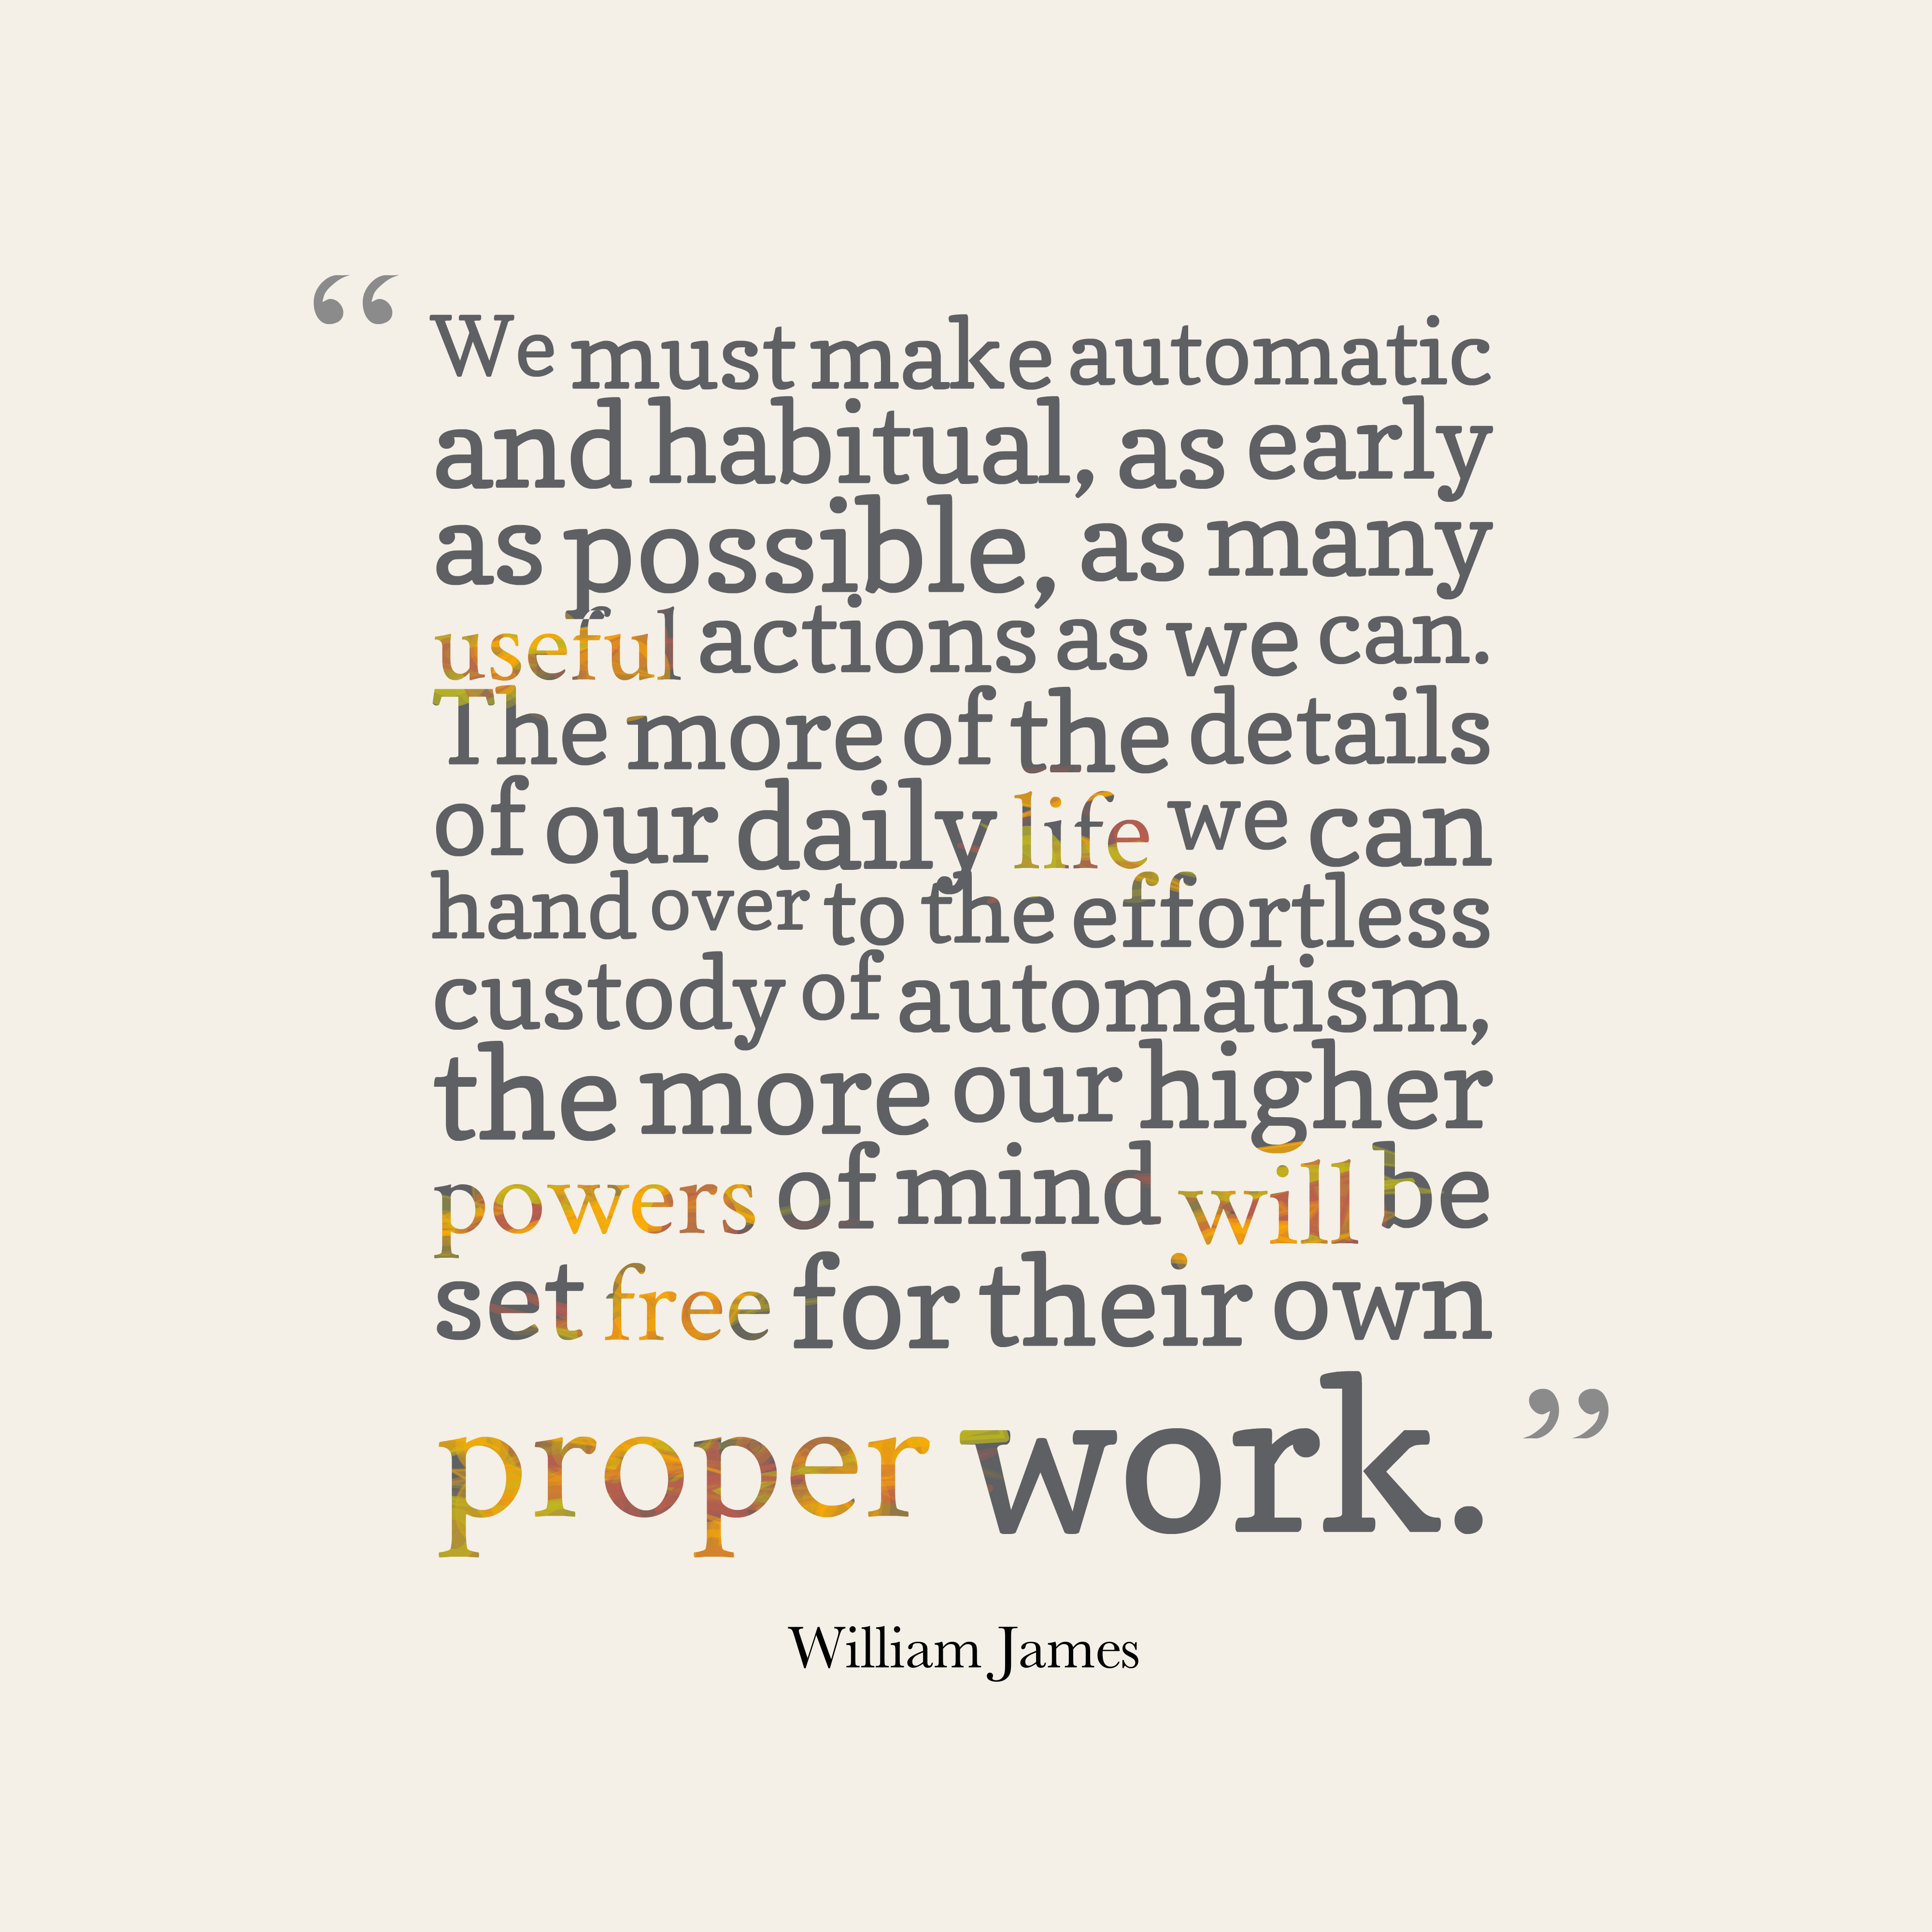 Quotes image of We must make automatic and habitual, as early as possible, as many useful actions as we can. The more of the details of our daily life we can hand over to the effortless custody of automatism, the more our higher powers of mind will be set free for their own proper work.